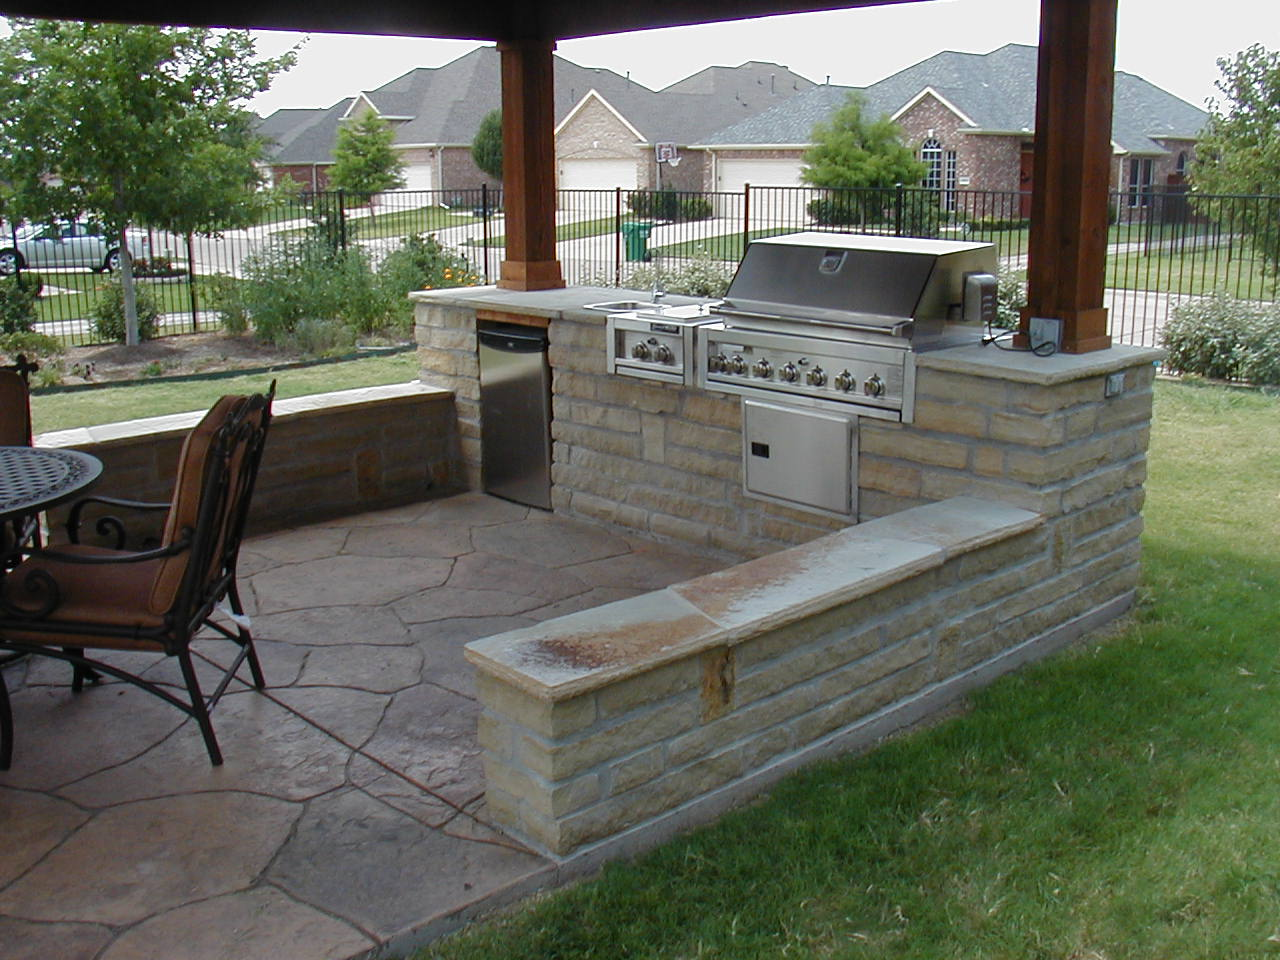 Some Outdoor Patio Design for Daily Outing | HomesFeed